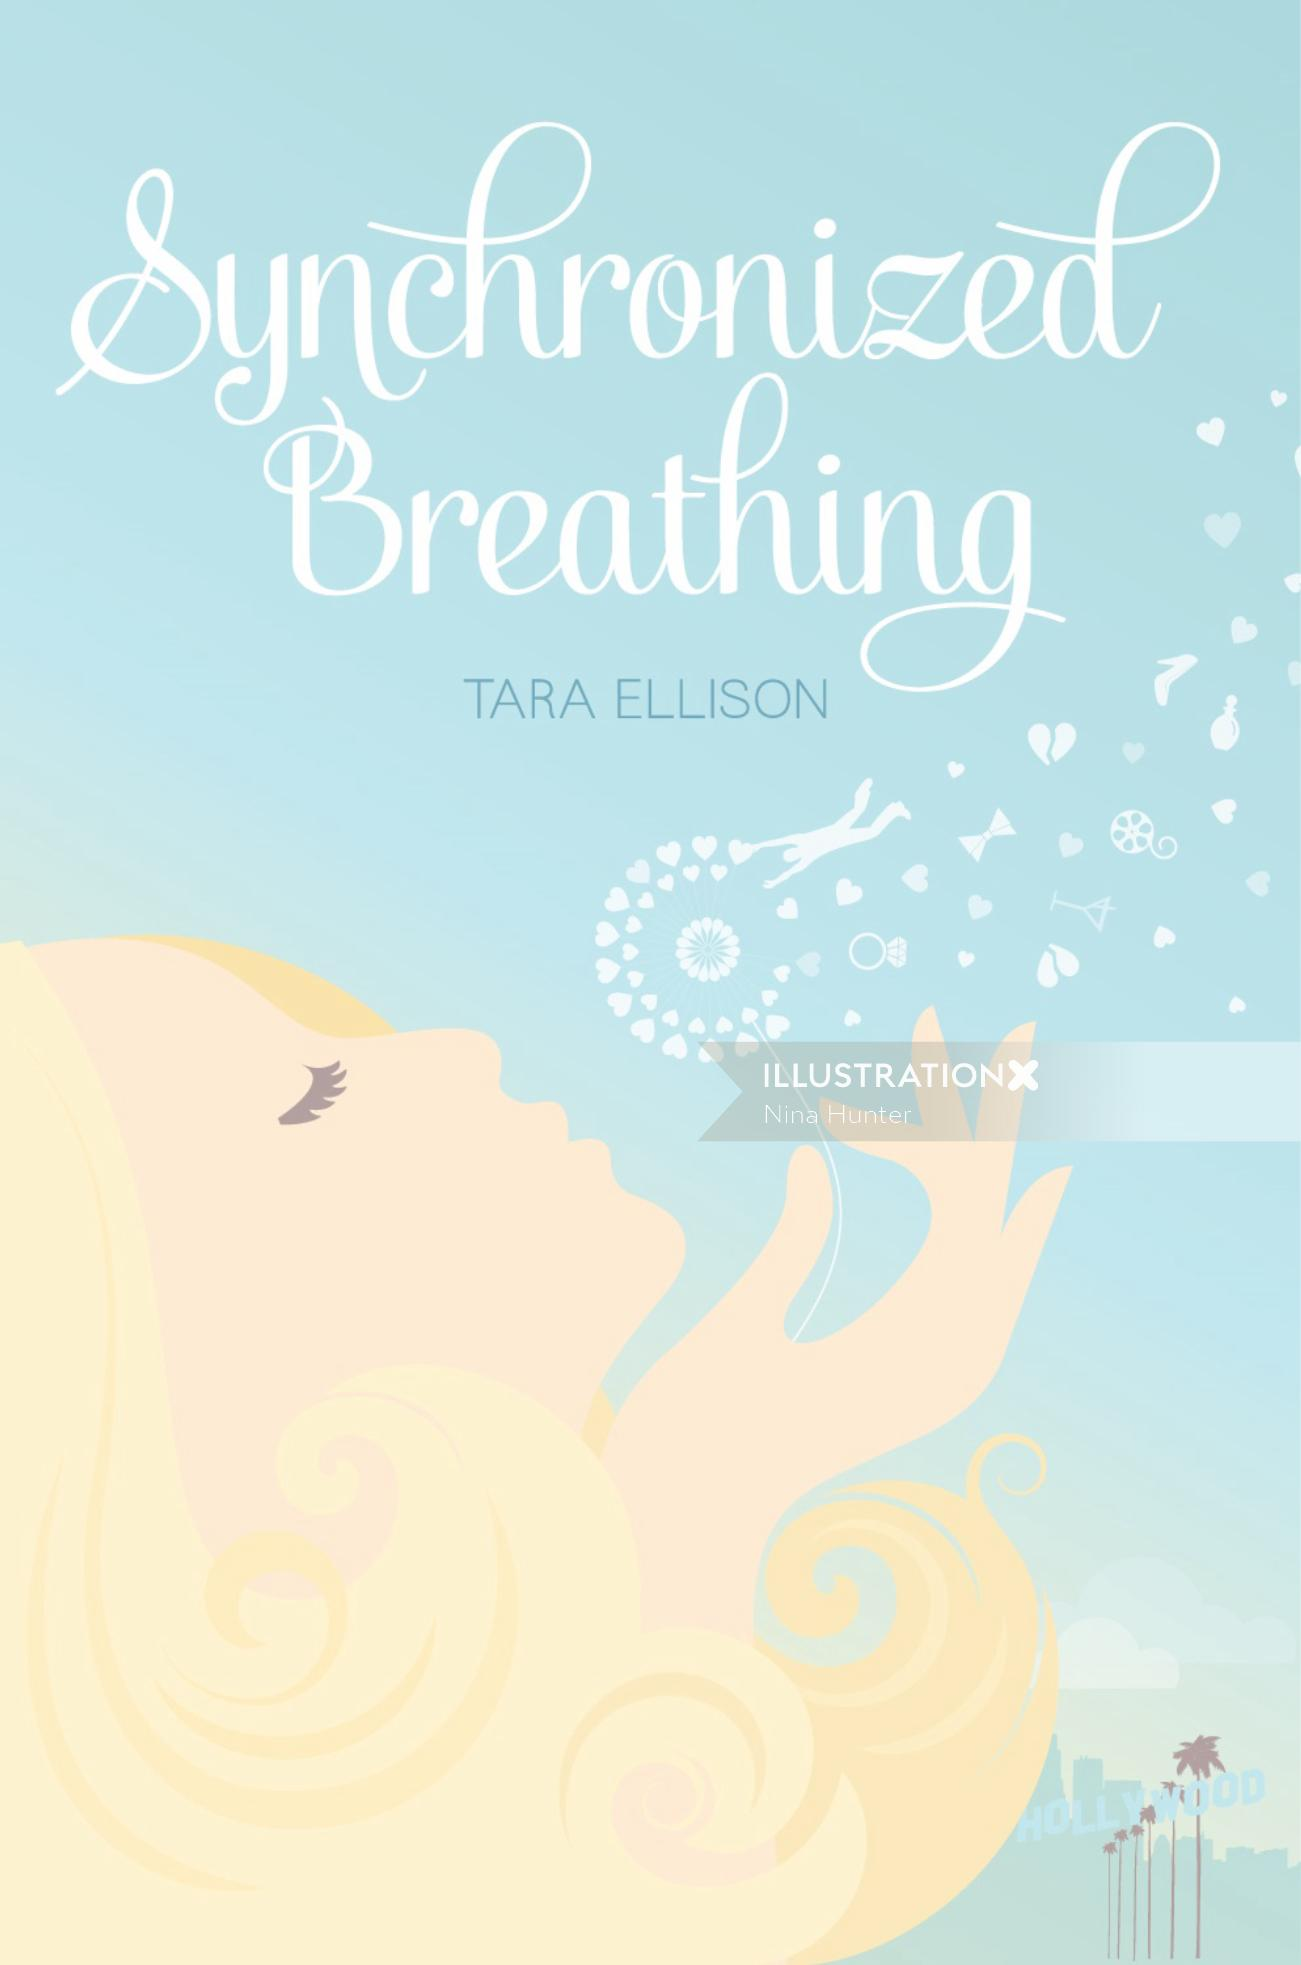 Book cover illustration for Synchronized breathing